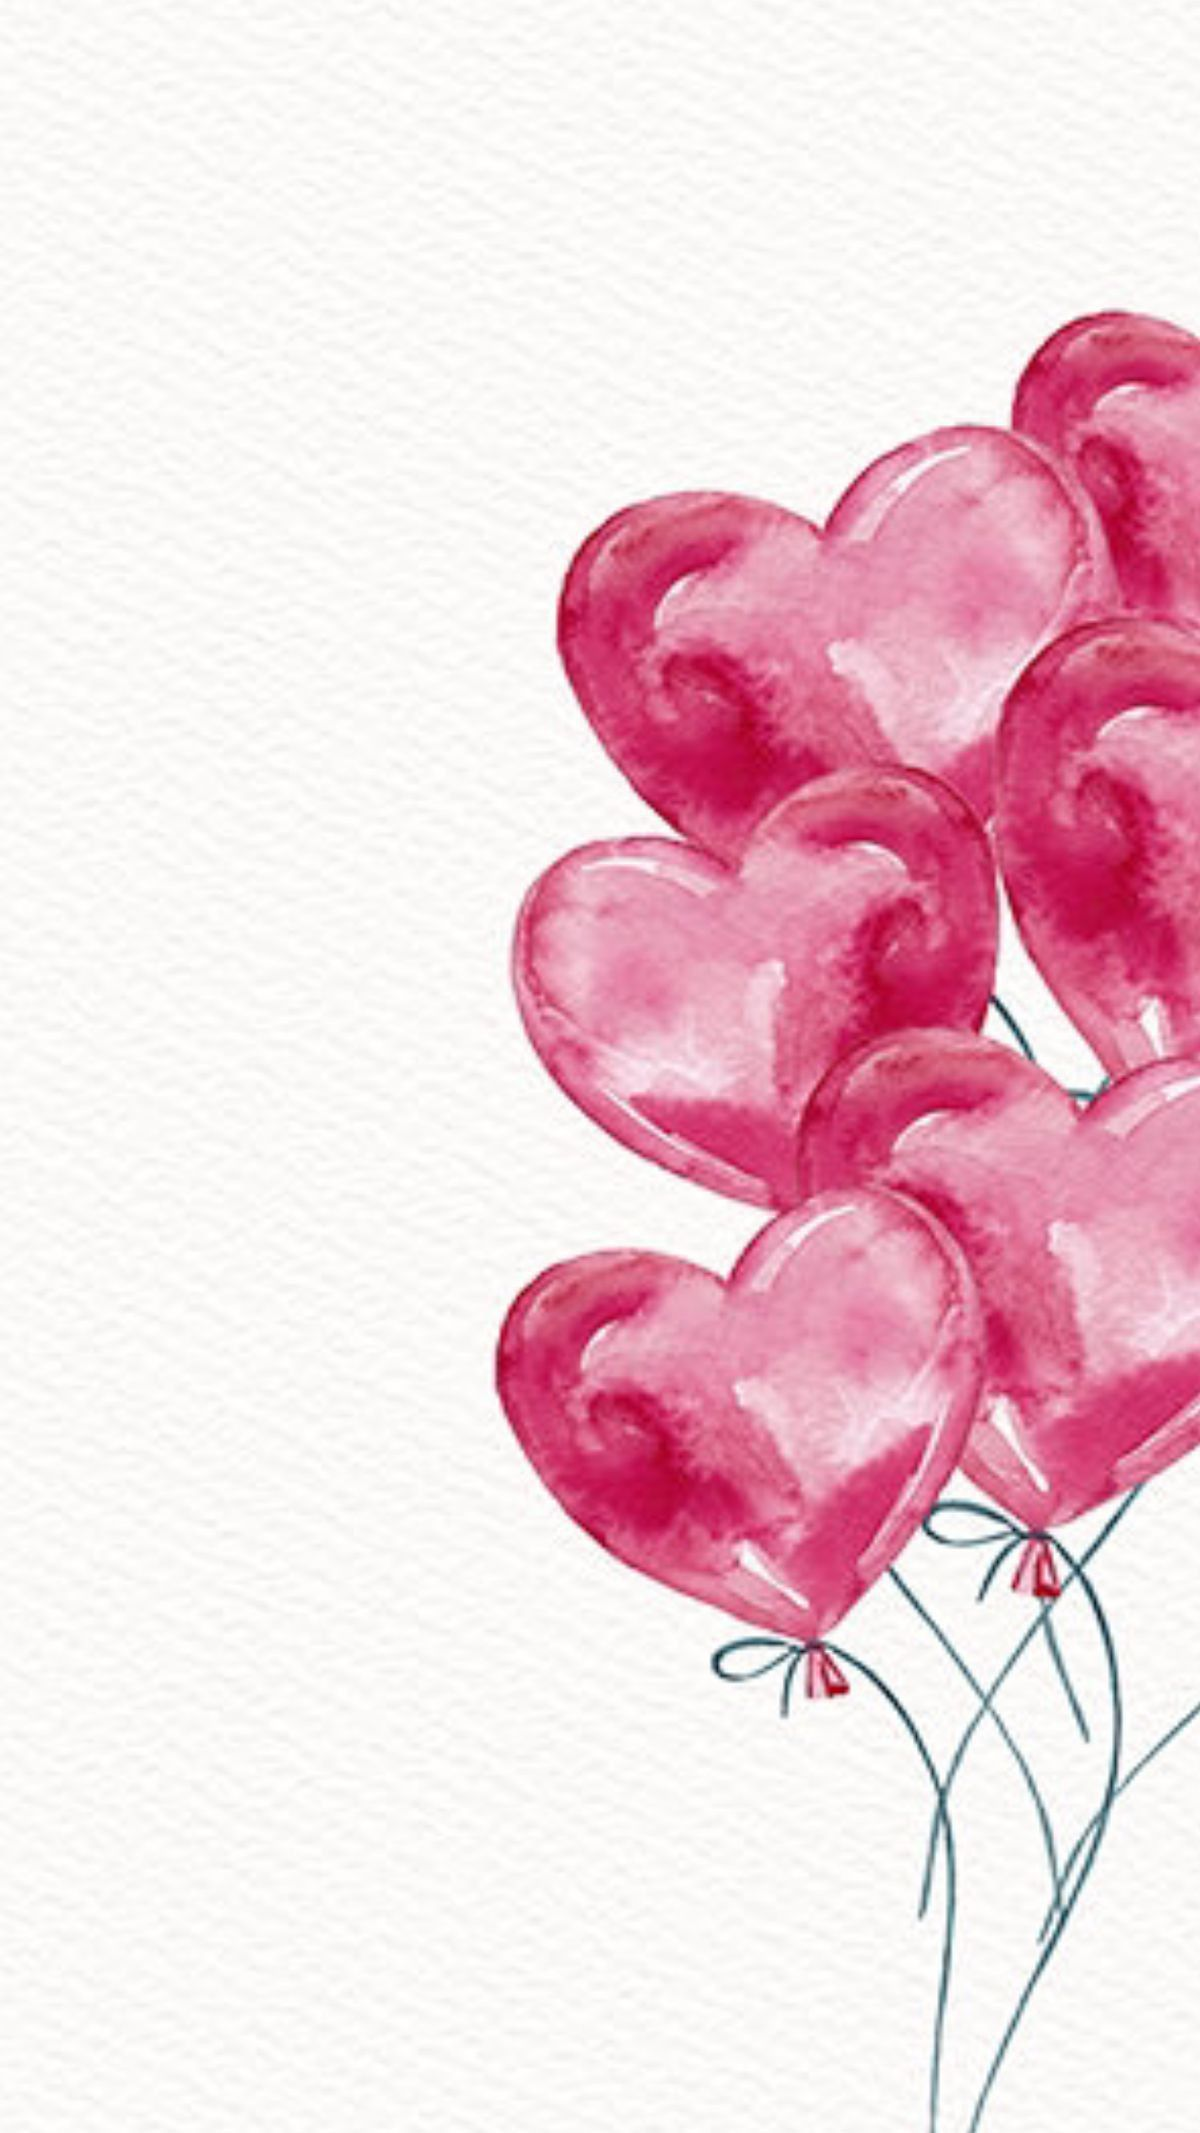 Love Is In The Air Wallpaperideas Cute Wallpapers Art Balloons